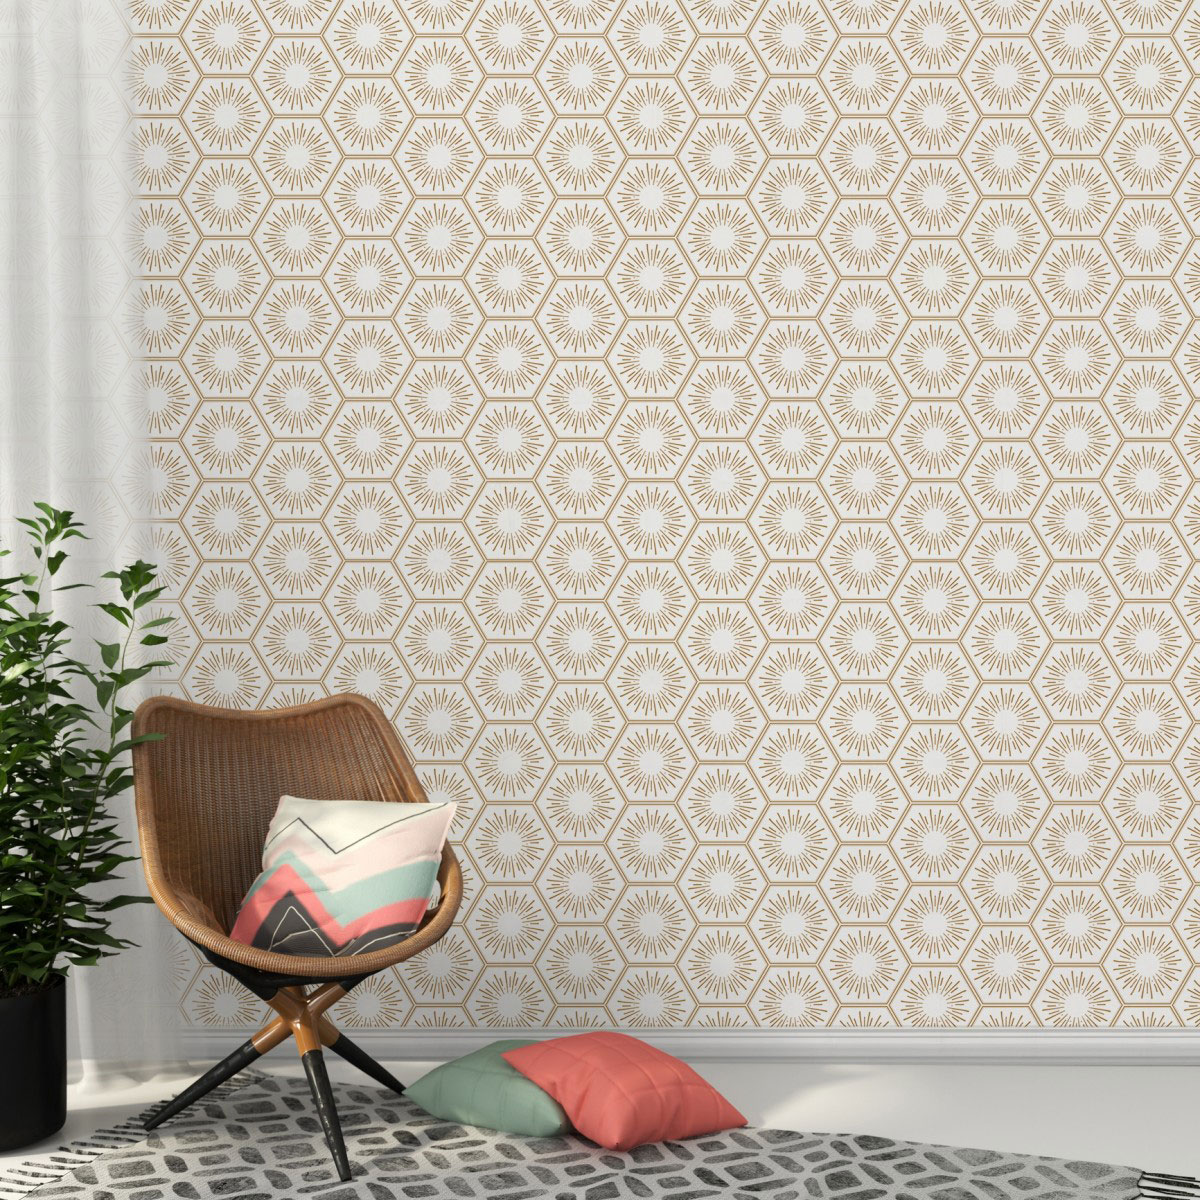 Wallpaper for Walls - Tempaper Hello Sunshine in Honeycomb